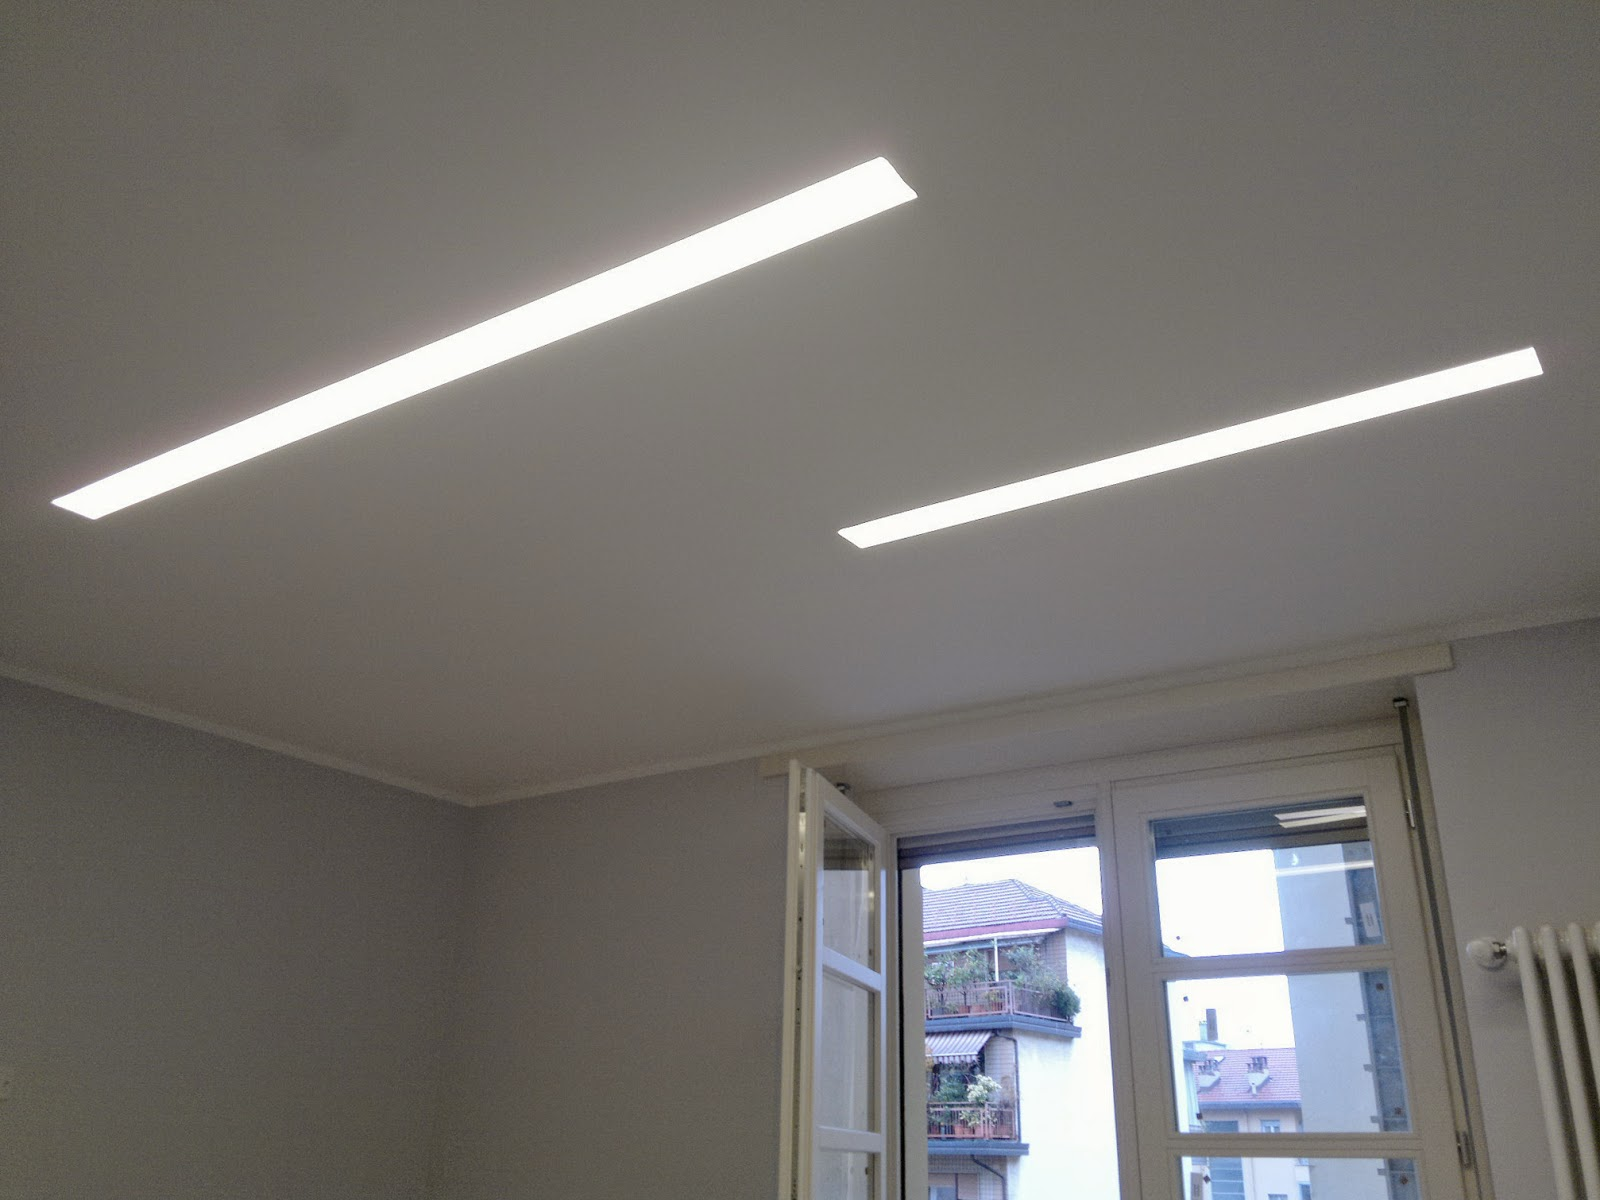 Illuminazione led casa spoke faretti e barre led con for Lampadari a led per interni